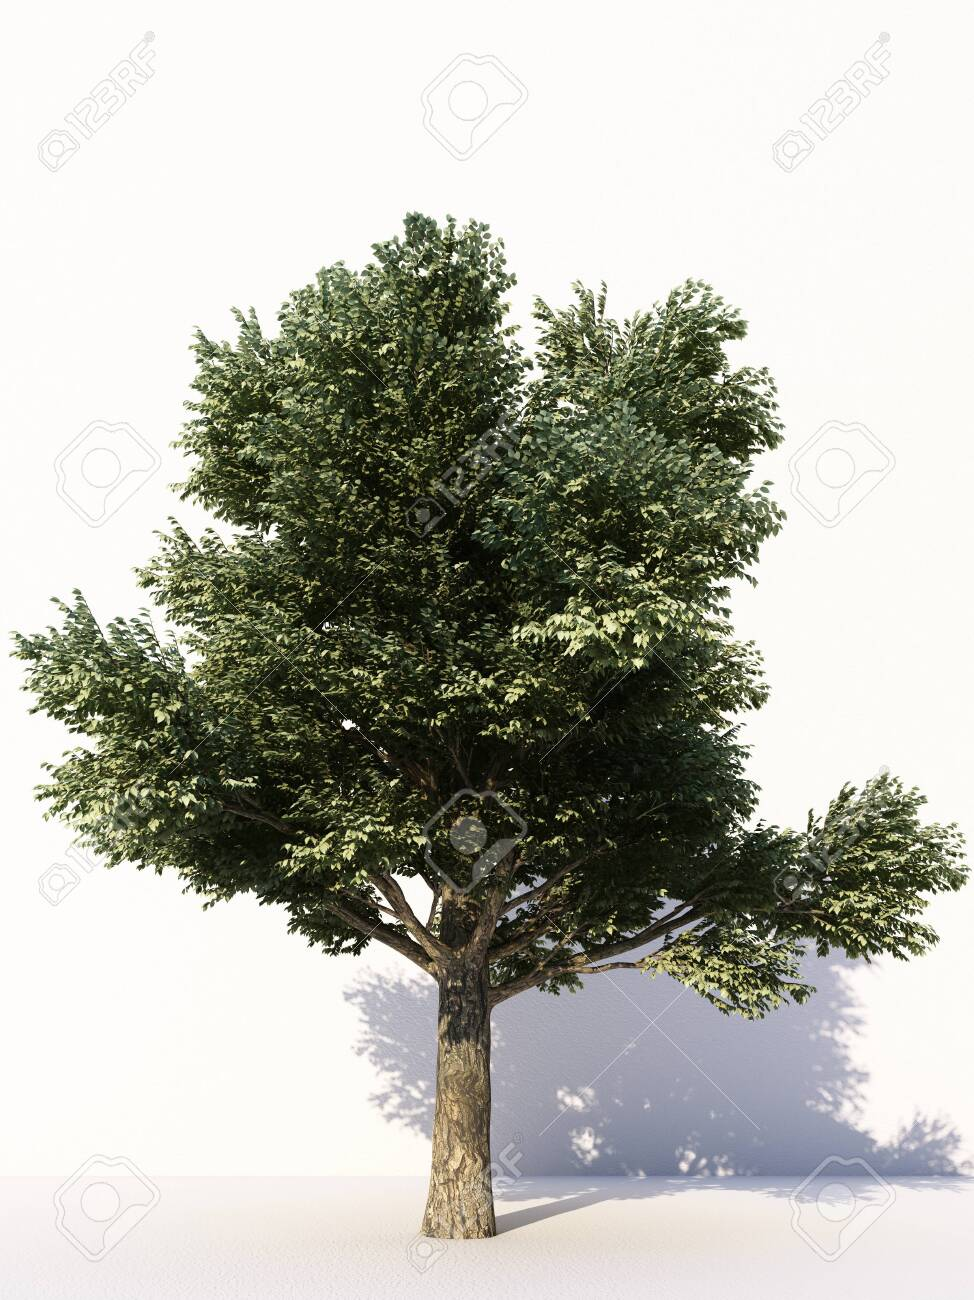 Trees isolated on white background, tropical trees isolated used for design, advertising and architecture. 3d rendering - 133134612